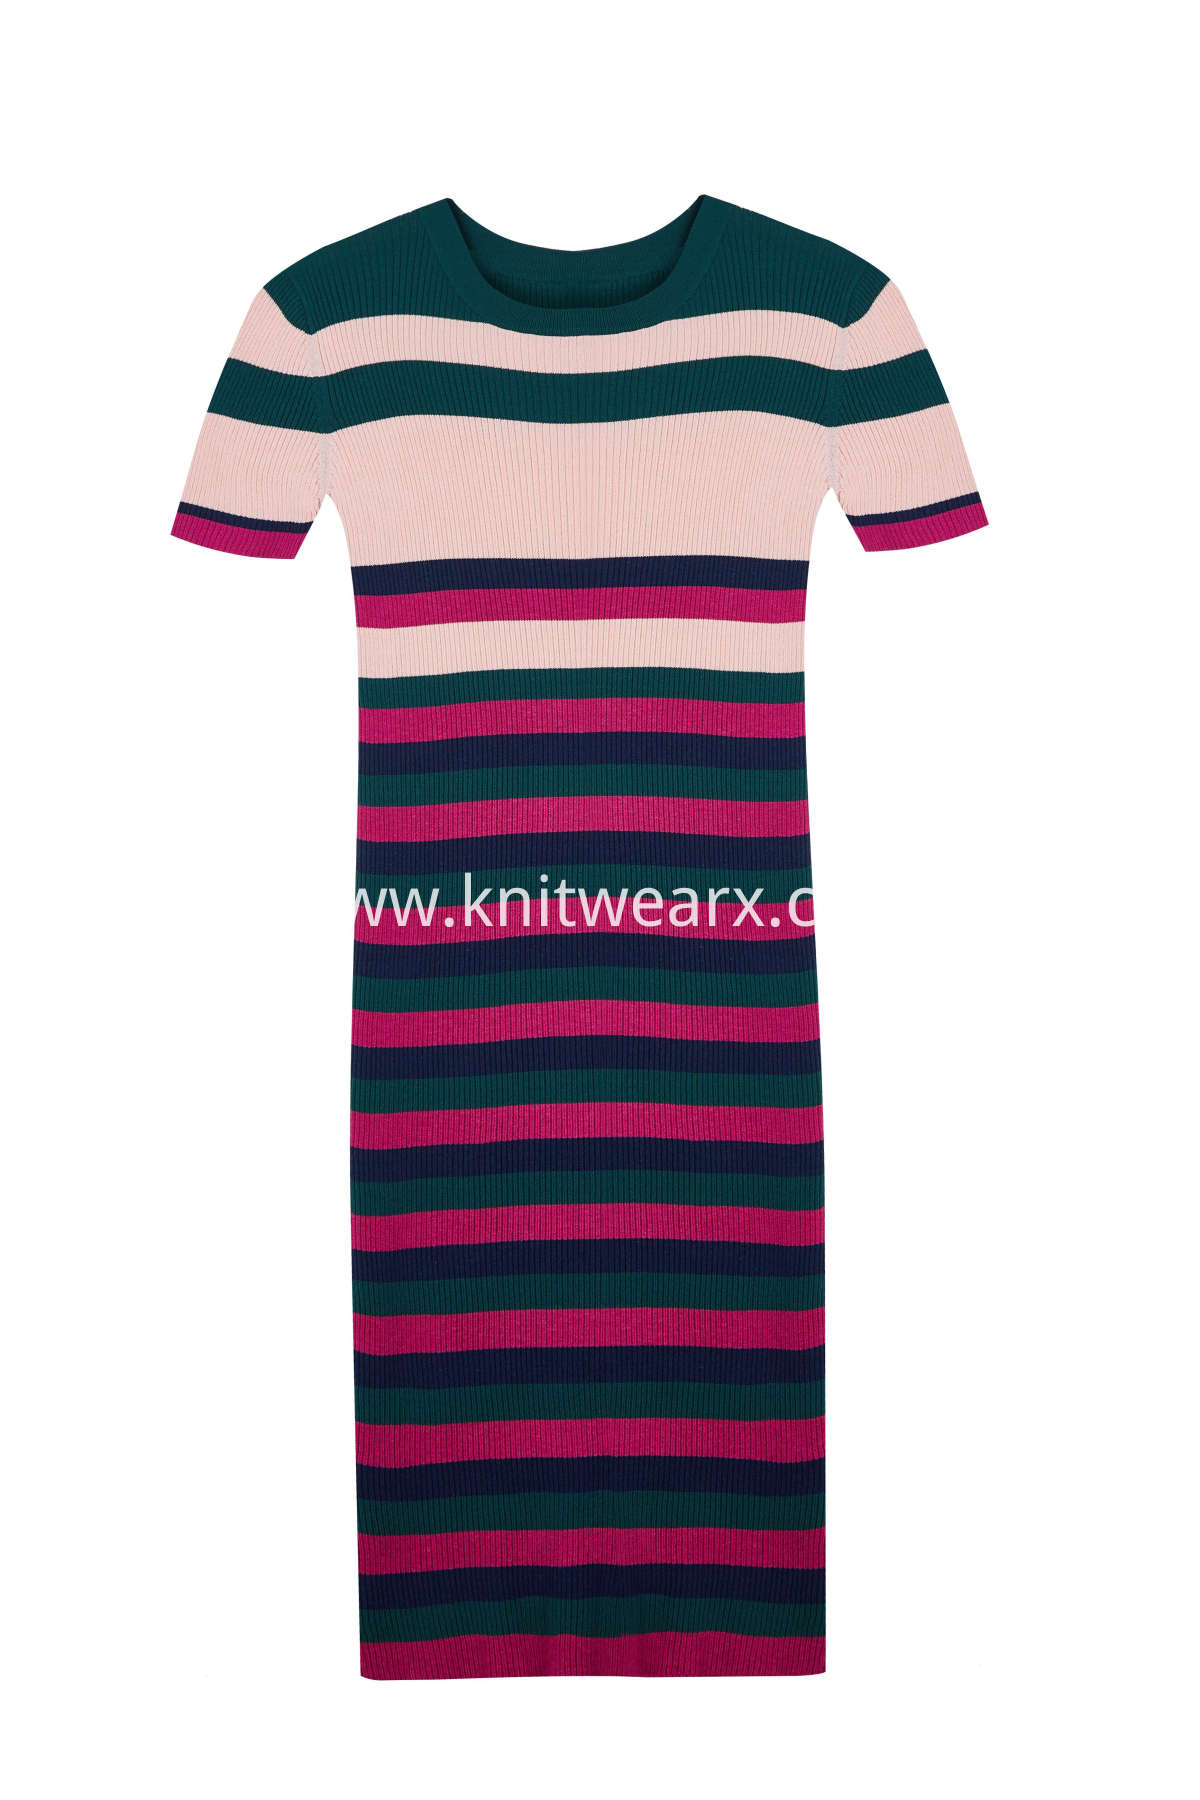 Women's Stripe Ribbed Knitwear Slim Fit Dress Short Sleeves